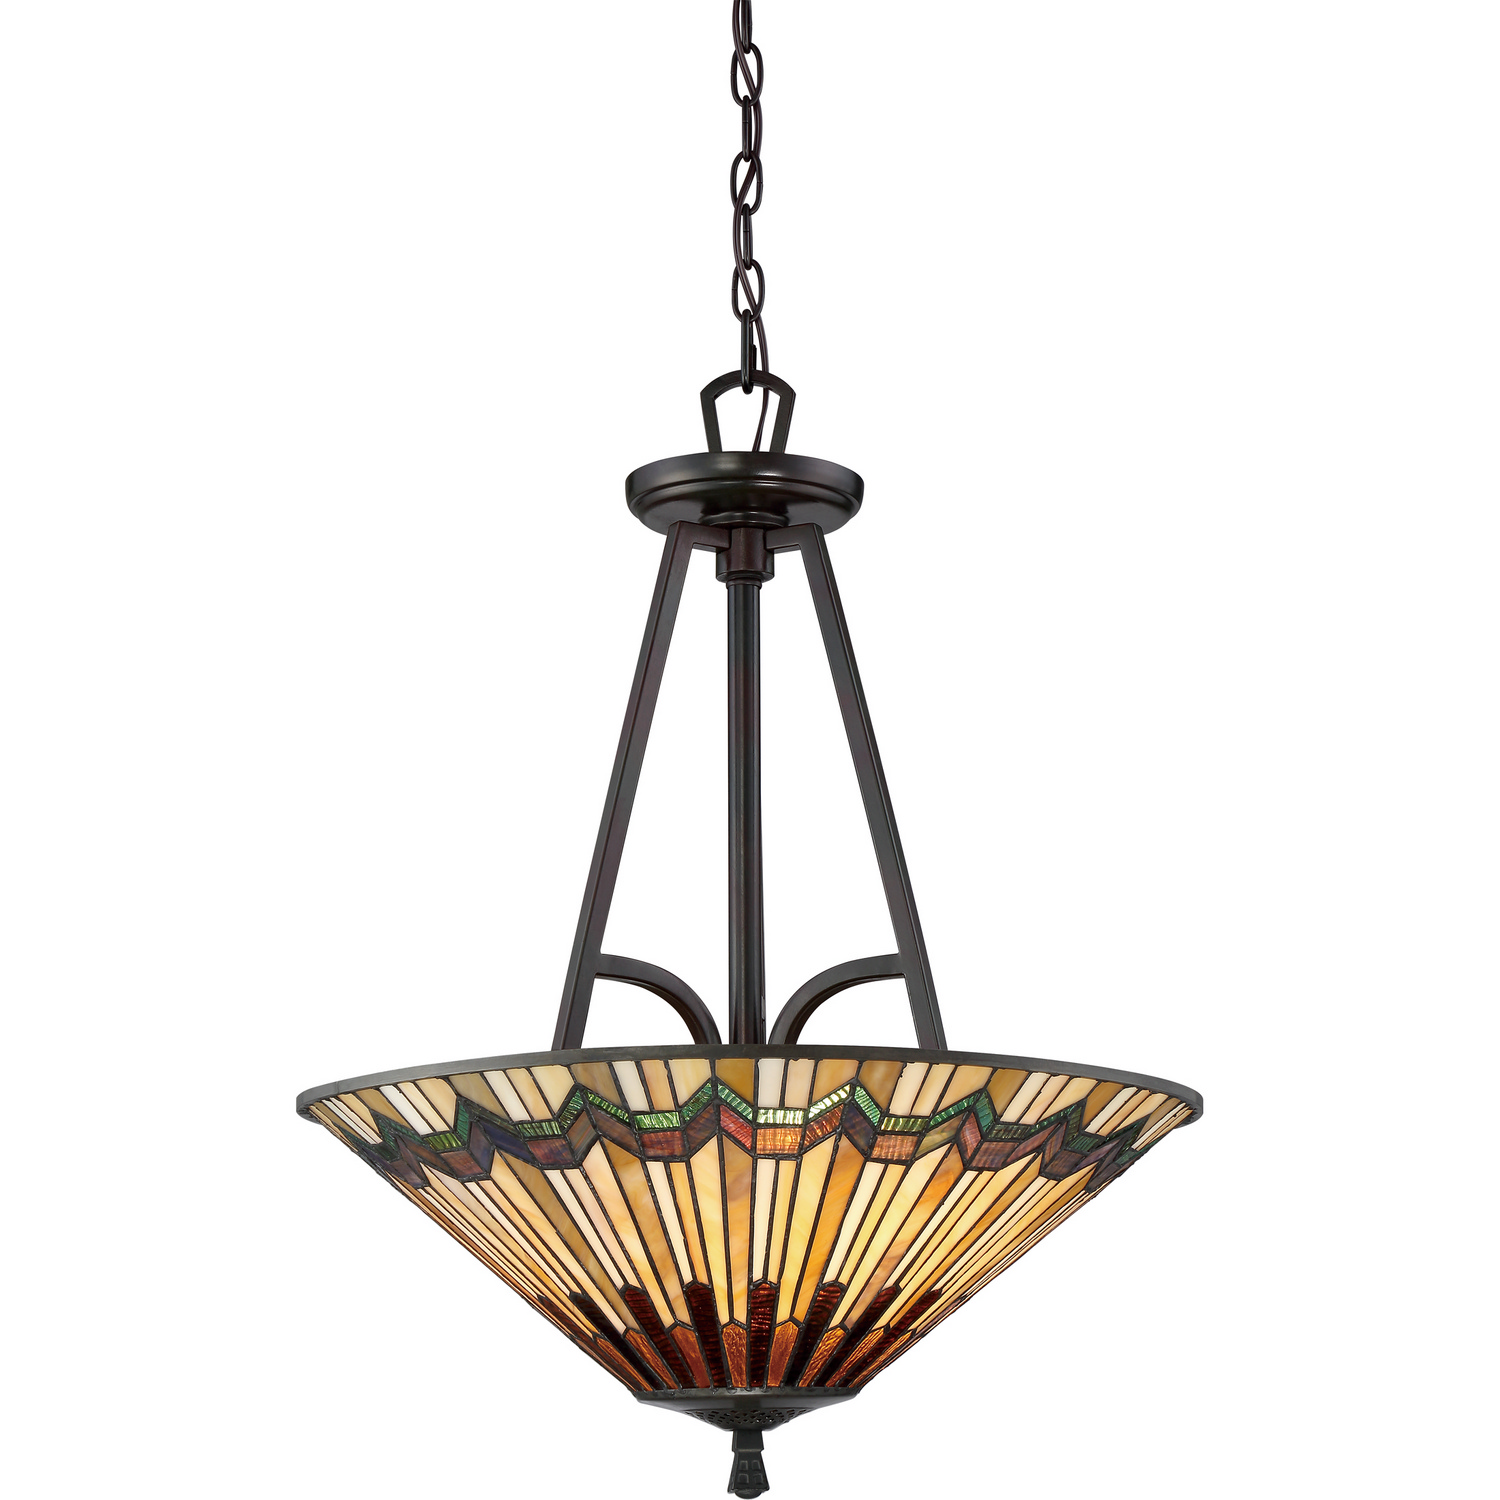 Best southwestern style lighting reviews prices quoizel alcott 22d by 25h chandelier 440 arubaitofo Images